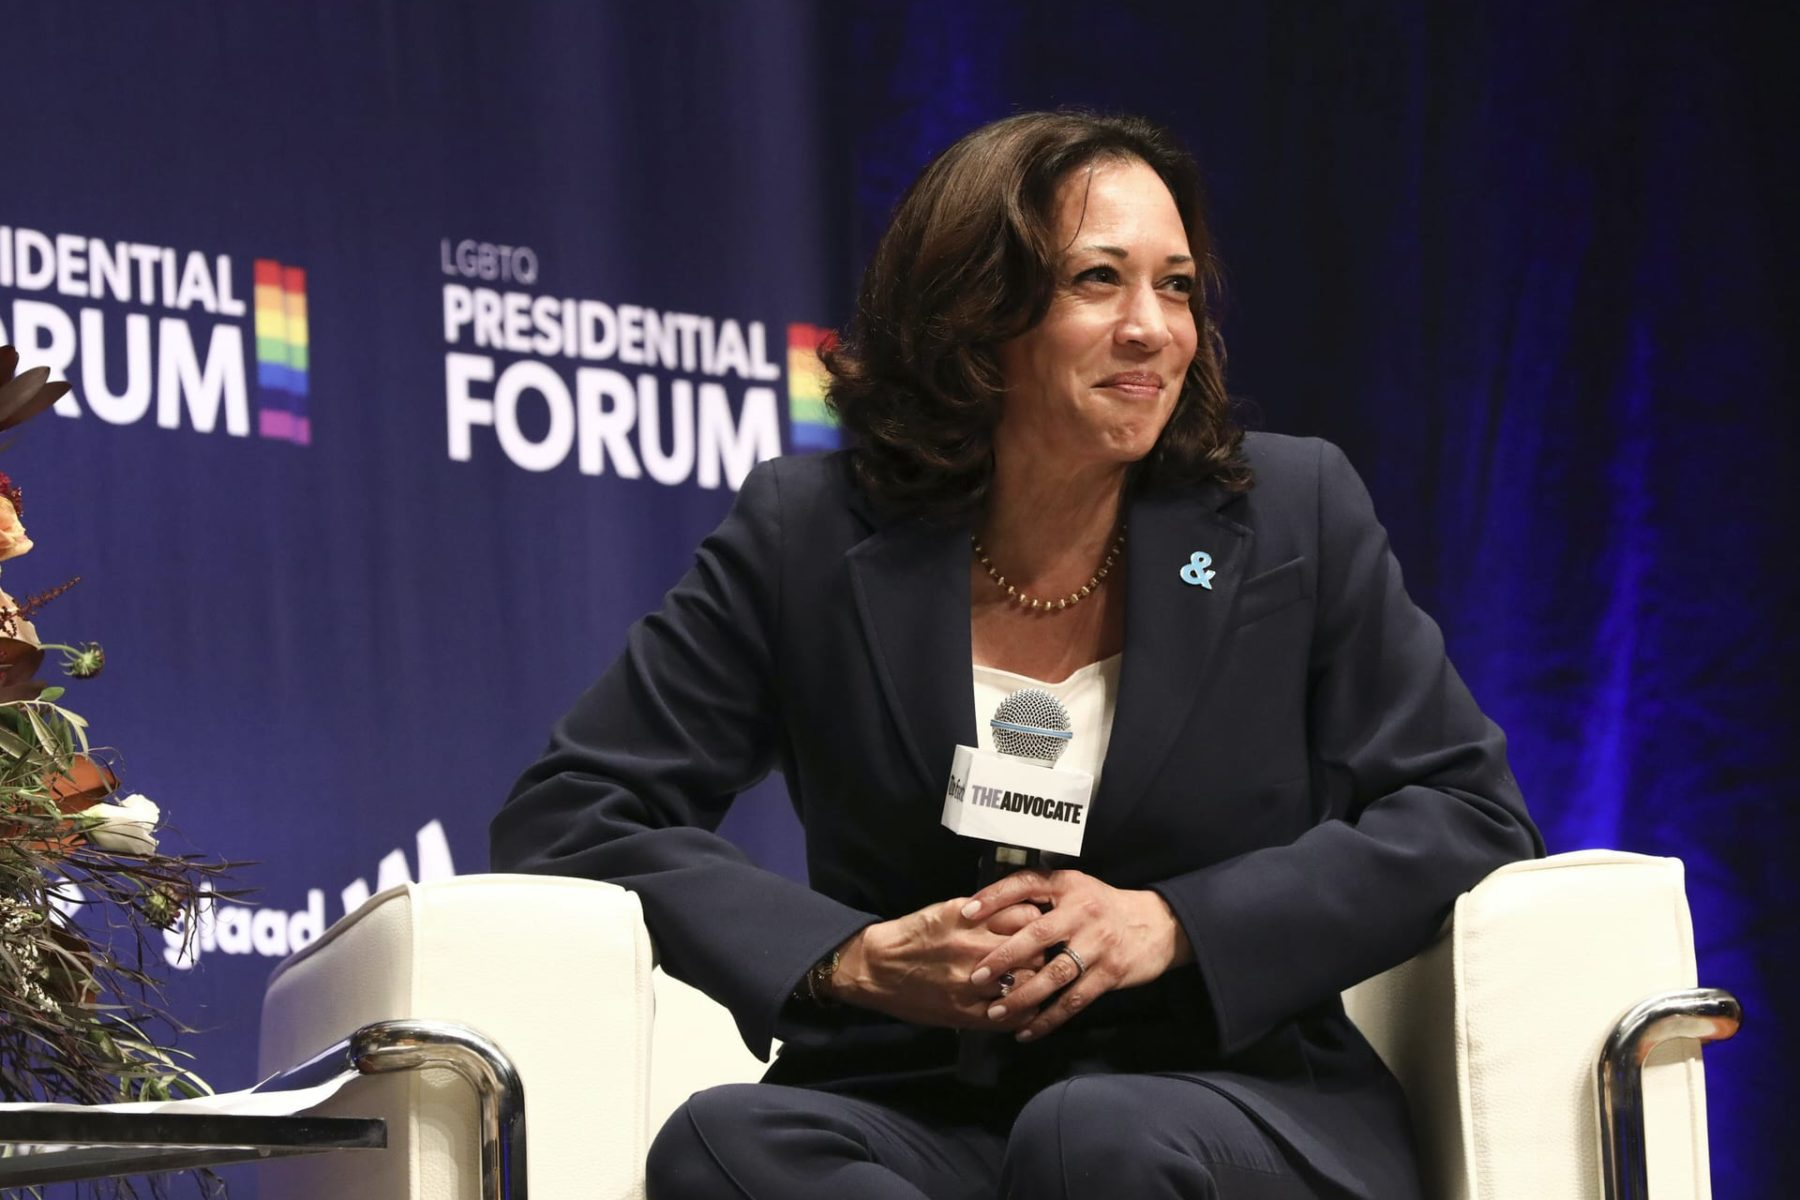 Kamala Harris smiling on stage.